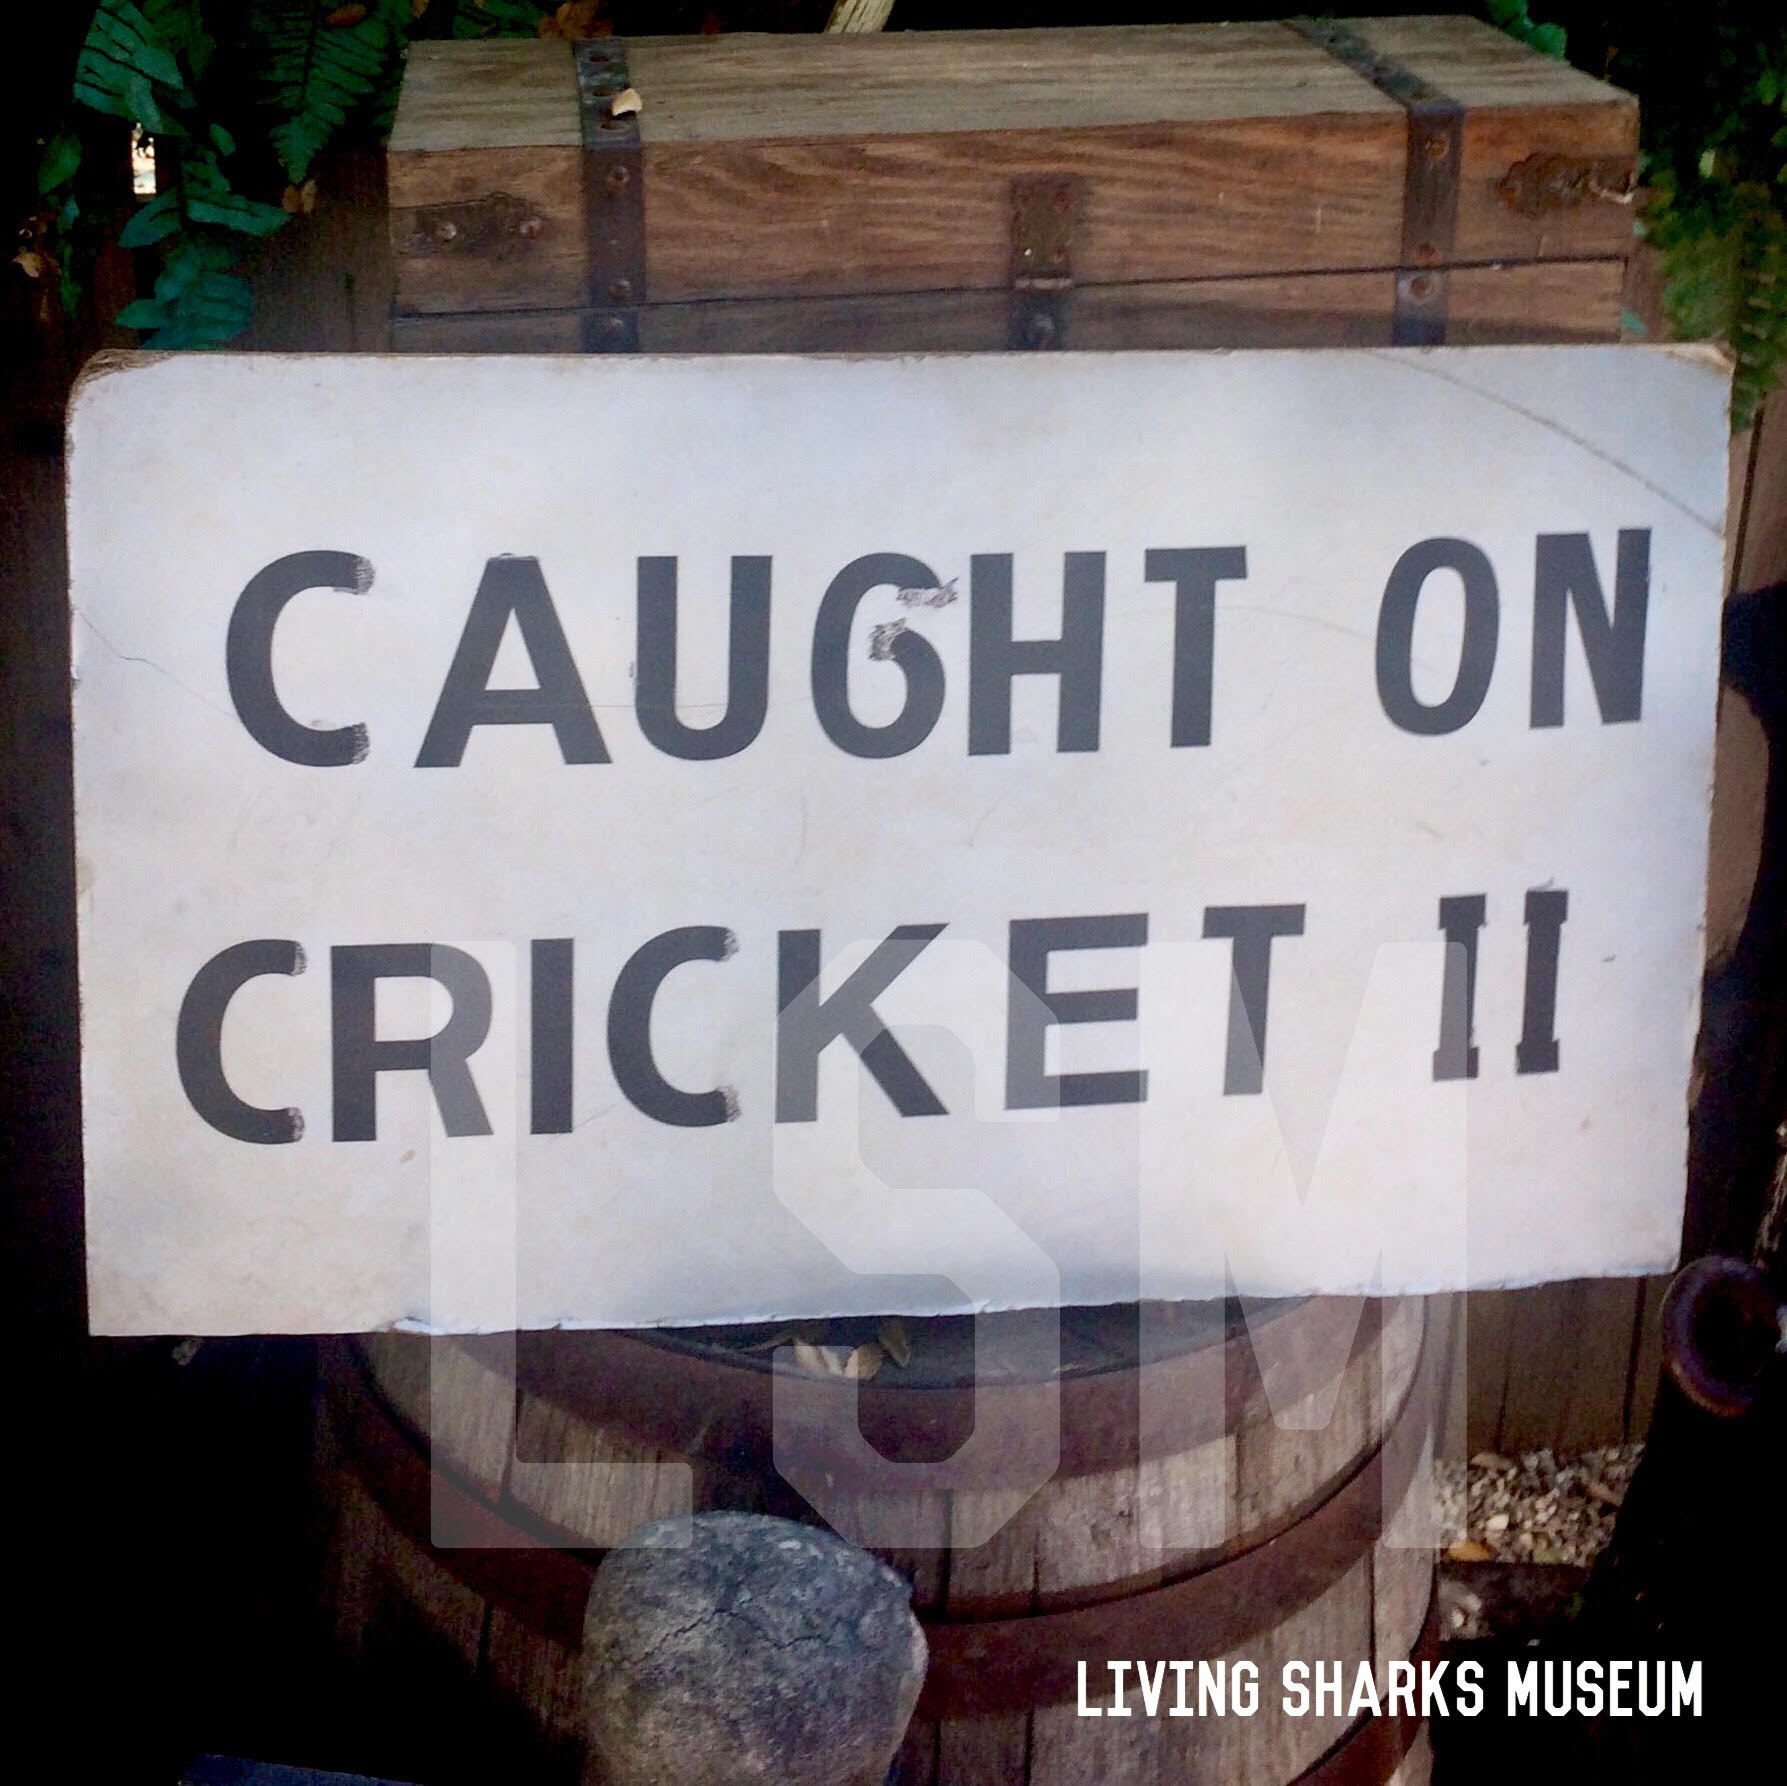 CRICKET II SIGN - As seen in legendary photos of some of Frank Mundus' earliest record catches, this is his personal sign that would accompany many publicity events. Most famously this sign can be seen along with the 3,000 pound Great White Shark caught on June 1, 1960 off Amagansett, depicted in Mundus' autobiography Fifty Years A Hooker._____________________CAUGHT ON CRICKET II PUBLICITY SIGNFROM FRANK MUNDUS PERSONAL COLLECTIONAcquired by Chris Kiszka, First Mate aboard Cricket IIPrivate Collection - Keith M. Cowley